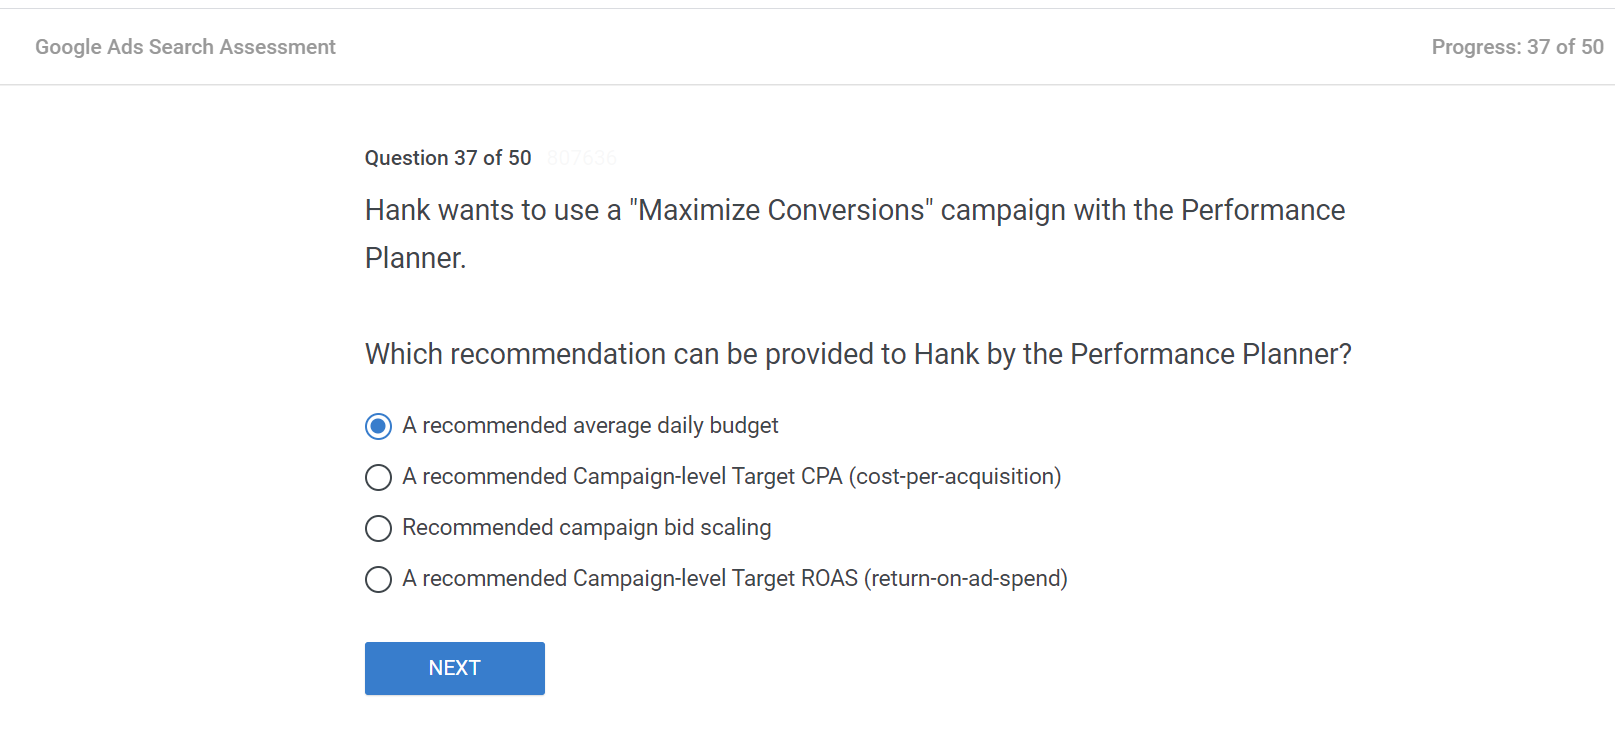 Hank wants to use a Maximize Conversions campaign with the Performance Planner